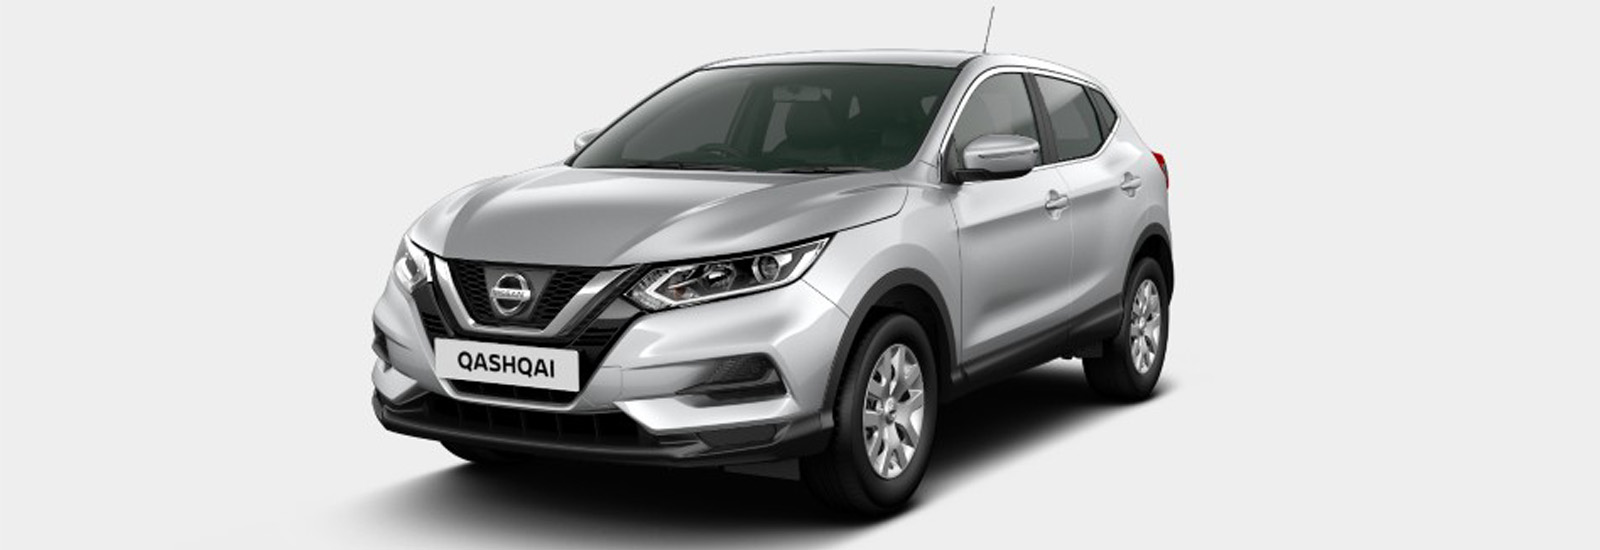 2018 nissan qashqai colours. interesting qashqai it looks smart on the qashqai and should hide road grime very well itu0027s a  rather nondescript colour so be easy to sell used market inside 2018 nissan qashqai colours carwow